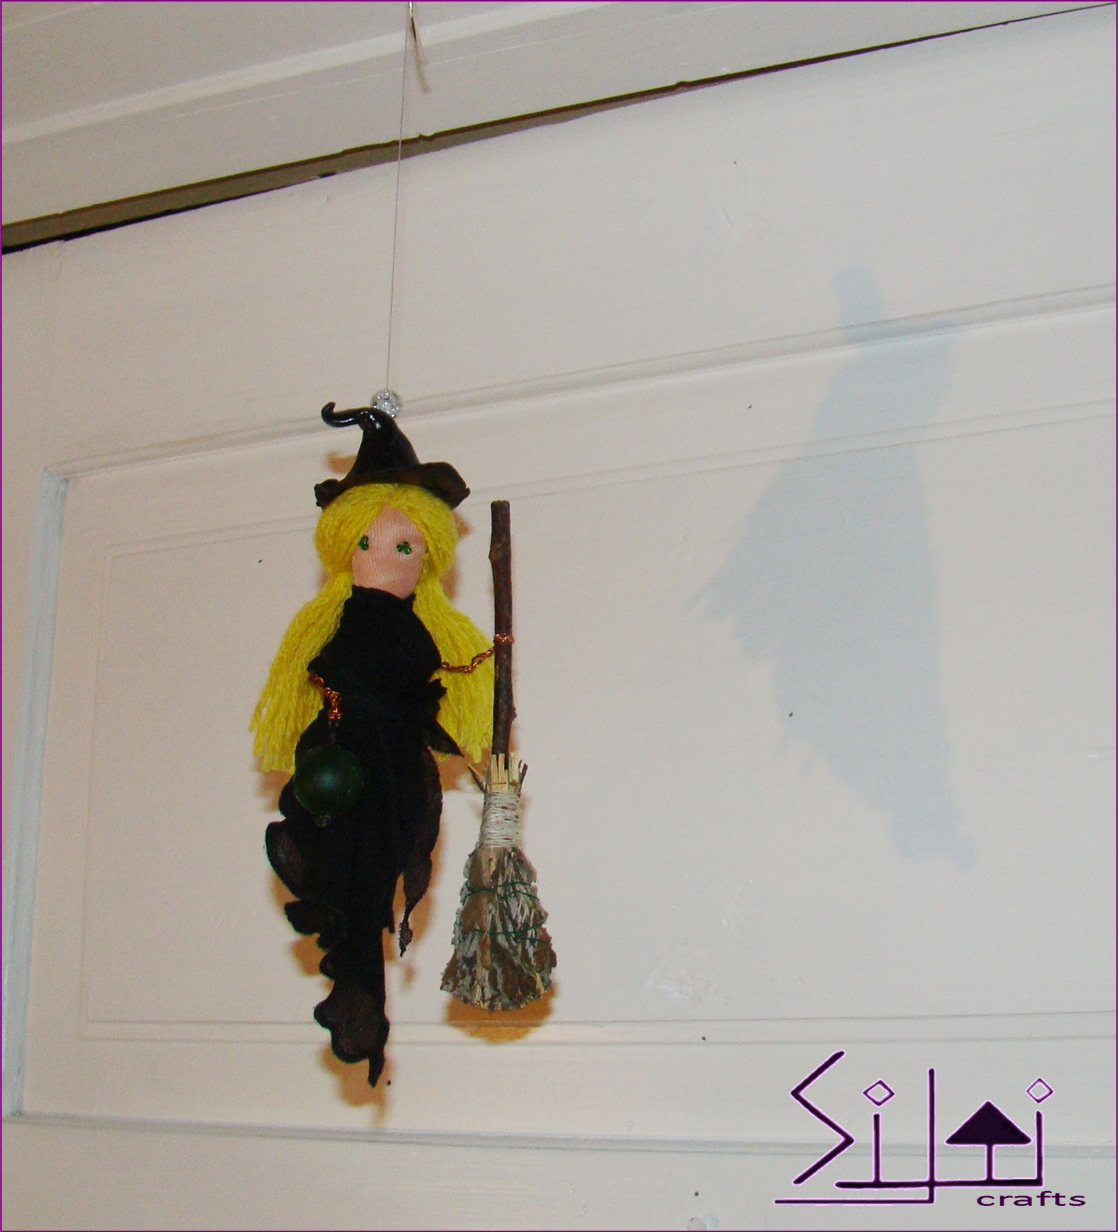 magic halloween cute decor moon black witch hanging mobile rustic upcycled magical hanger witchdecor farmhouse